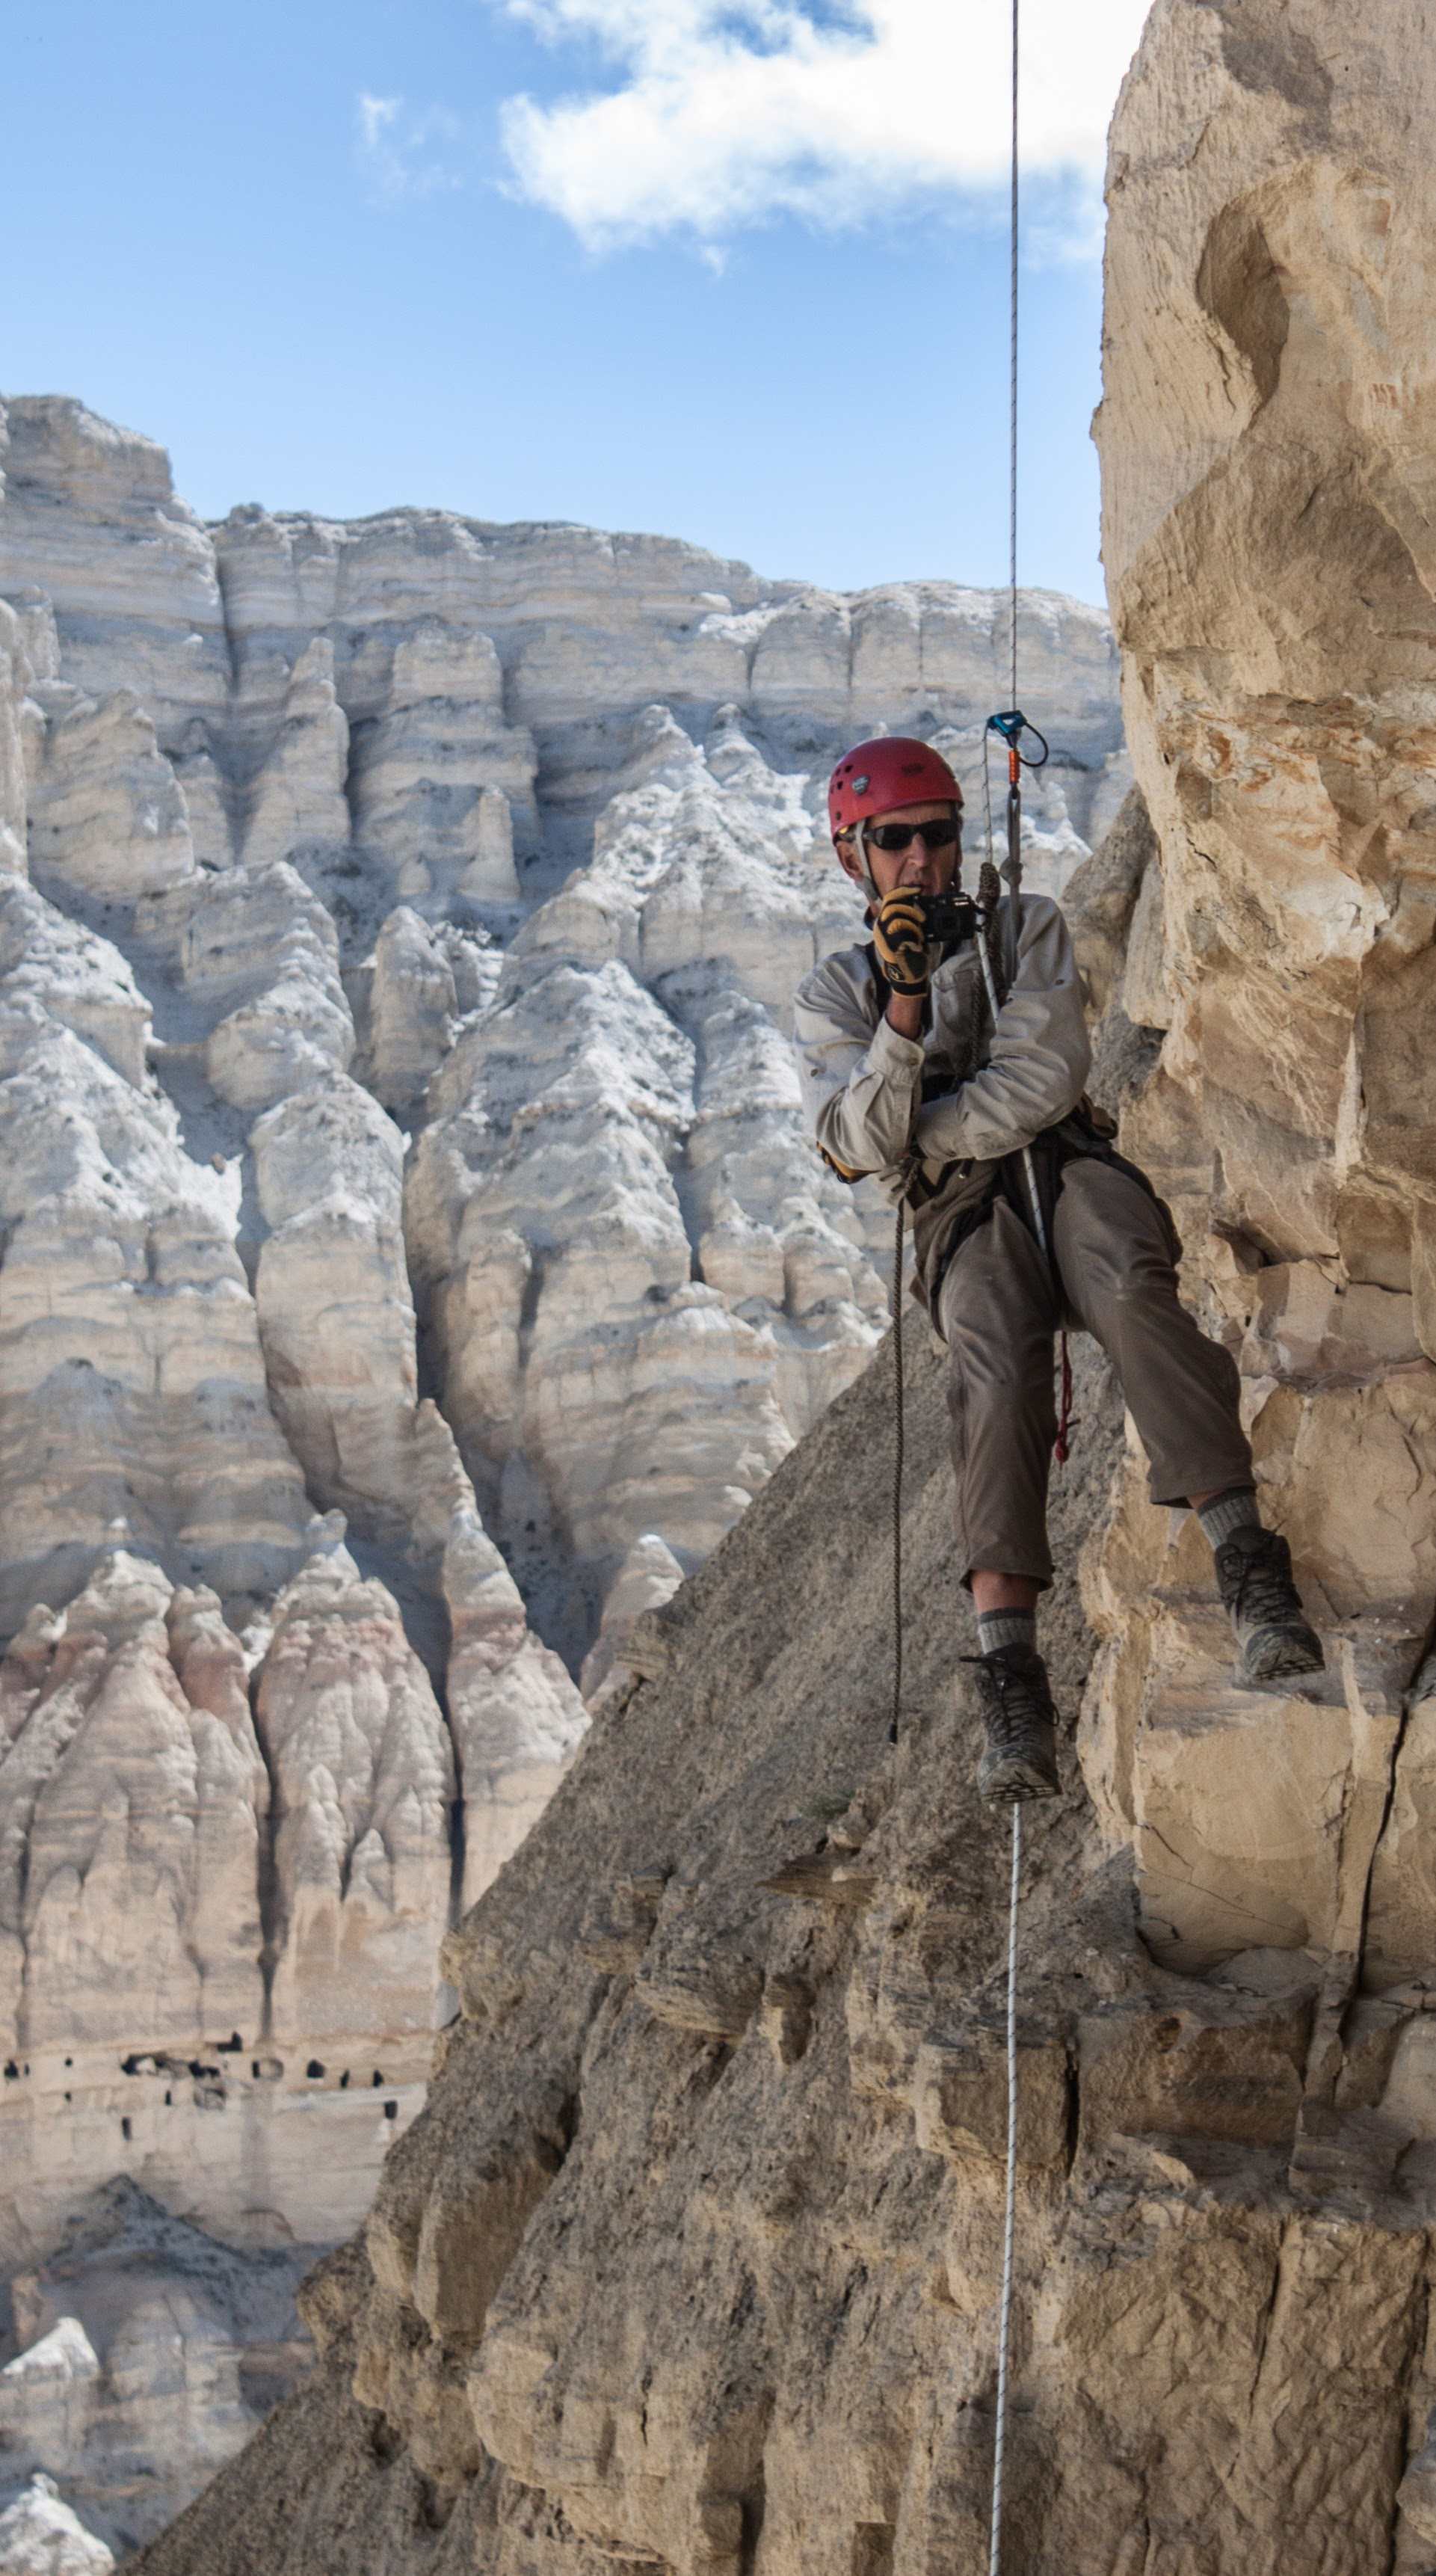 Rappelling 600 feet  in Nepal to reach caves occupied by humans centuries ago